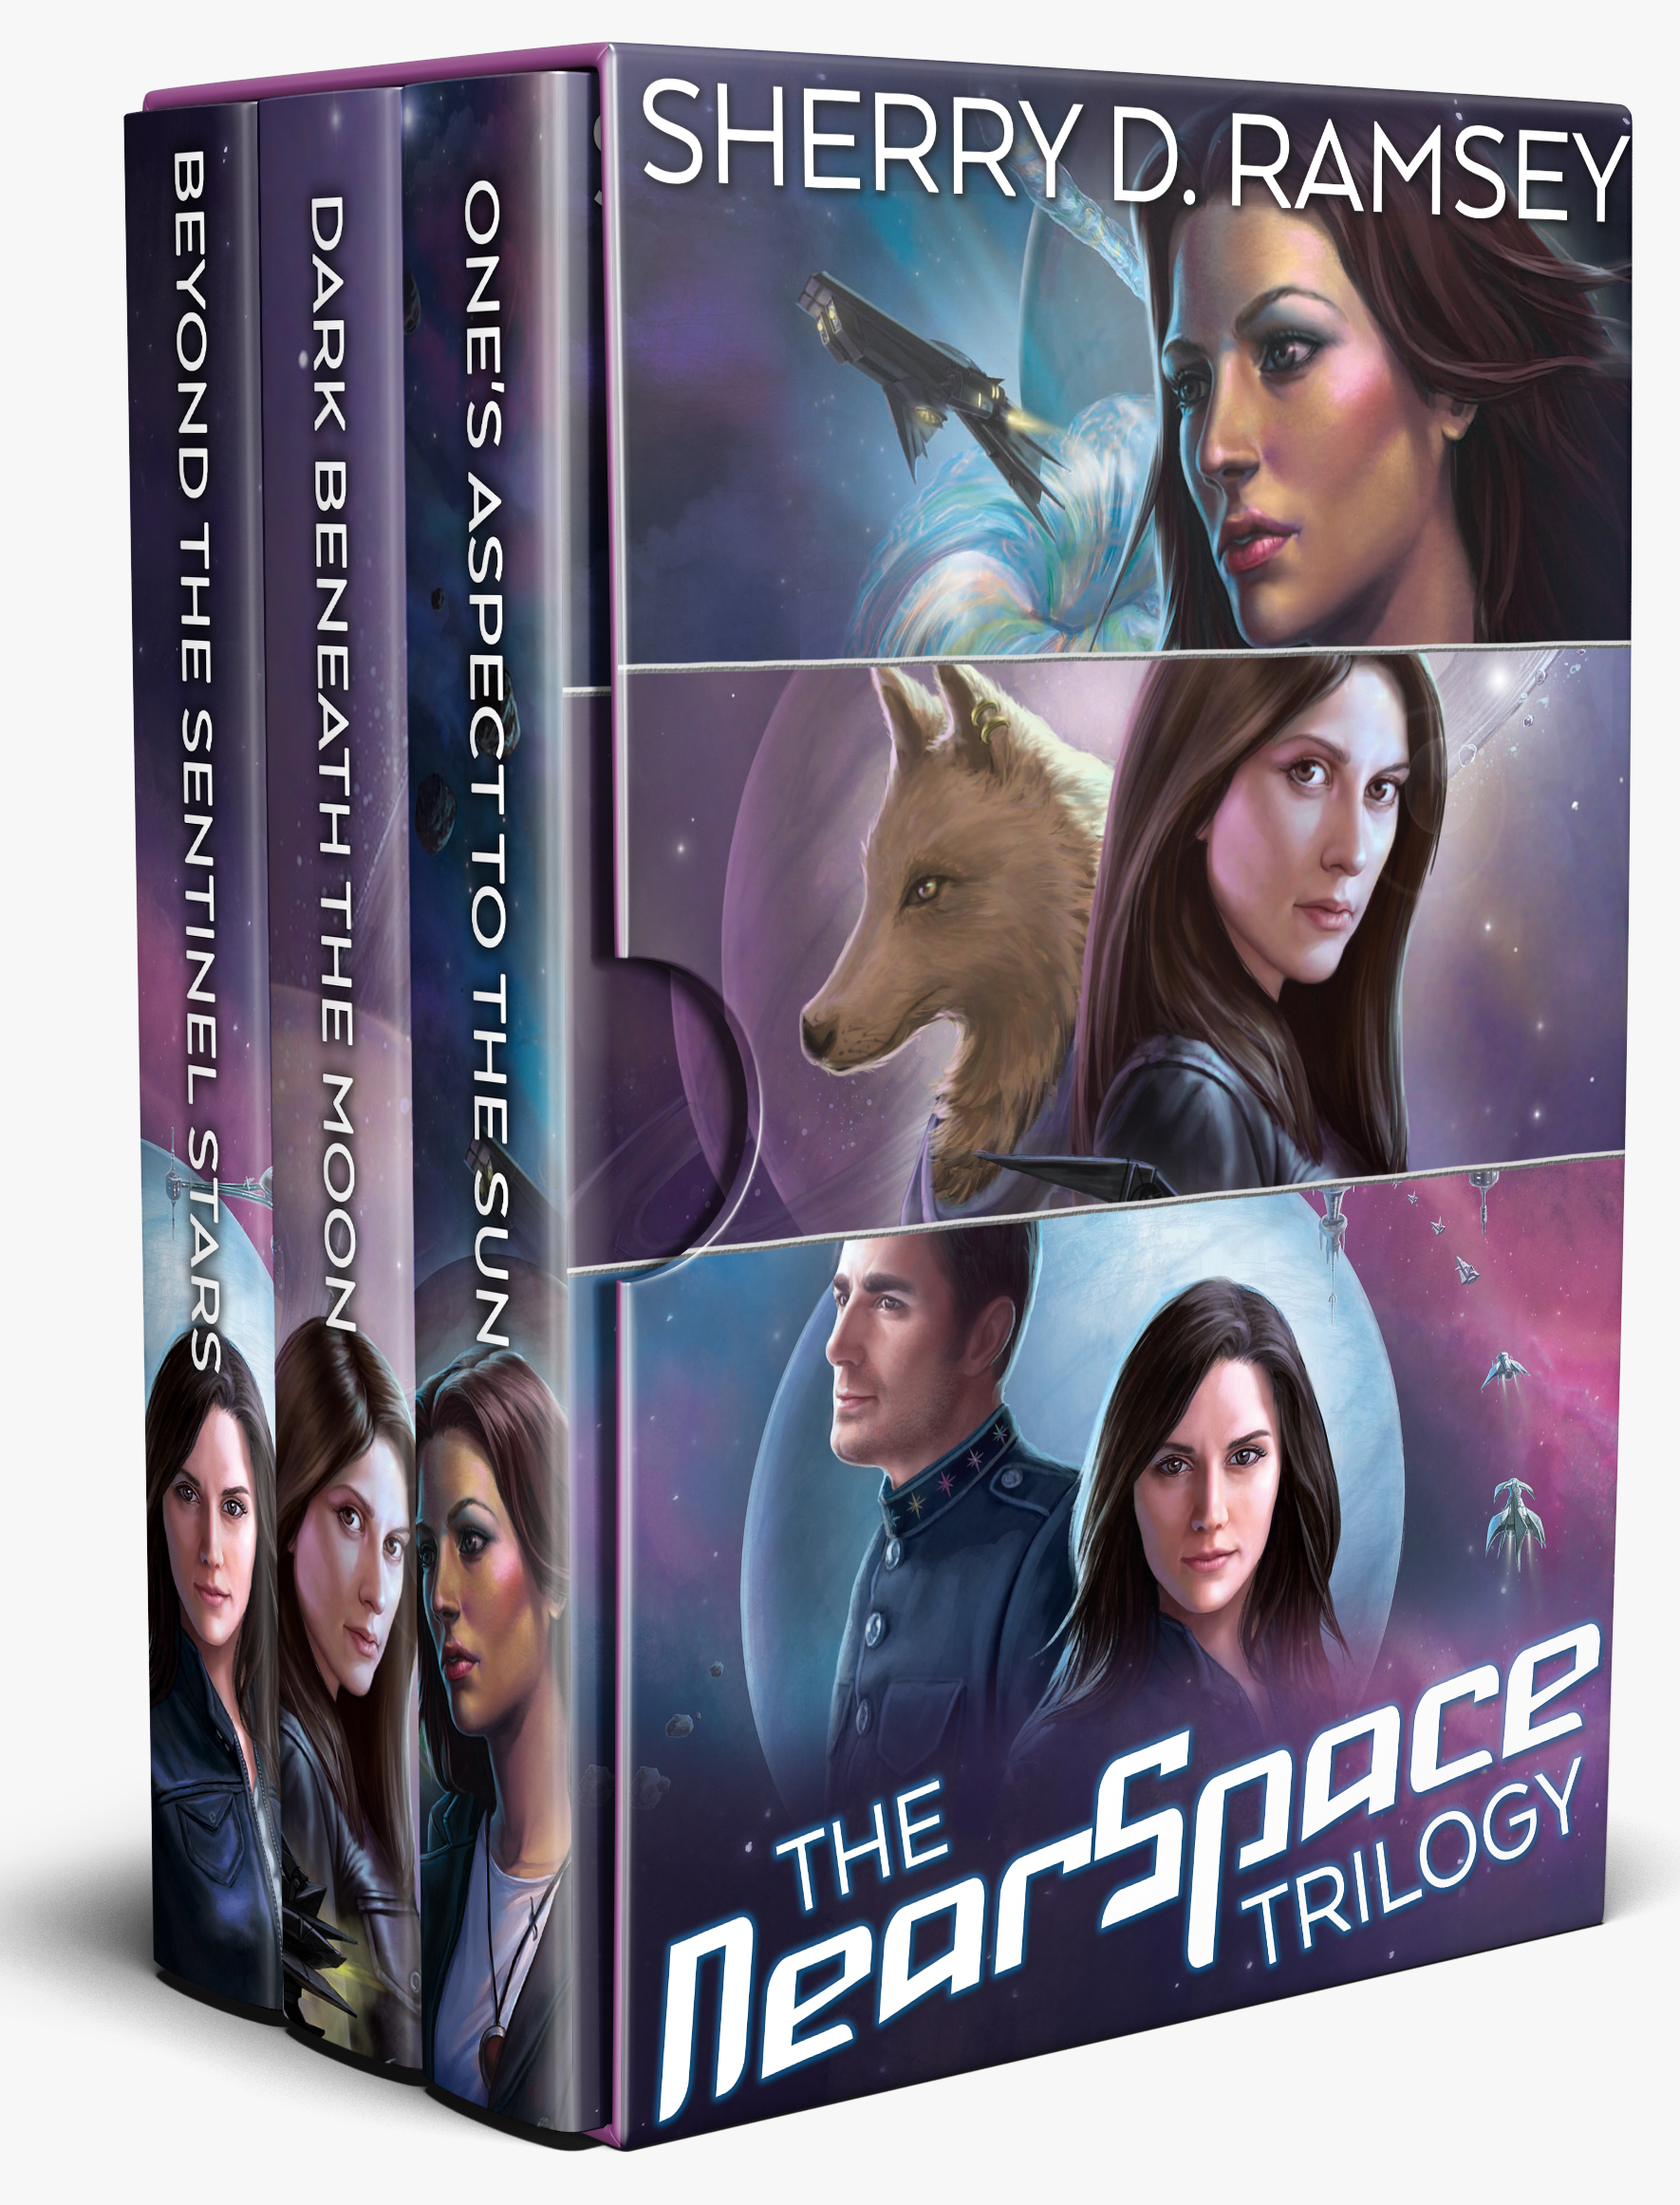 Nearspace Trilogy (ebook box set)